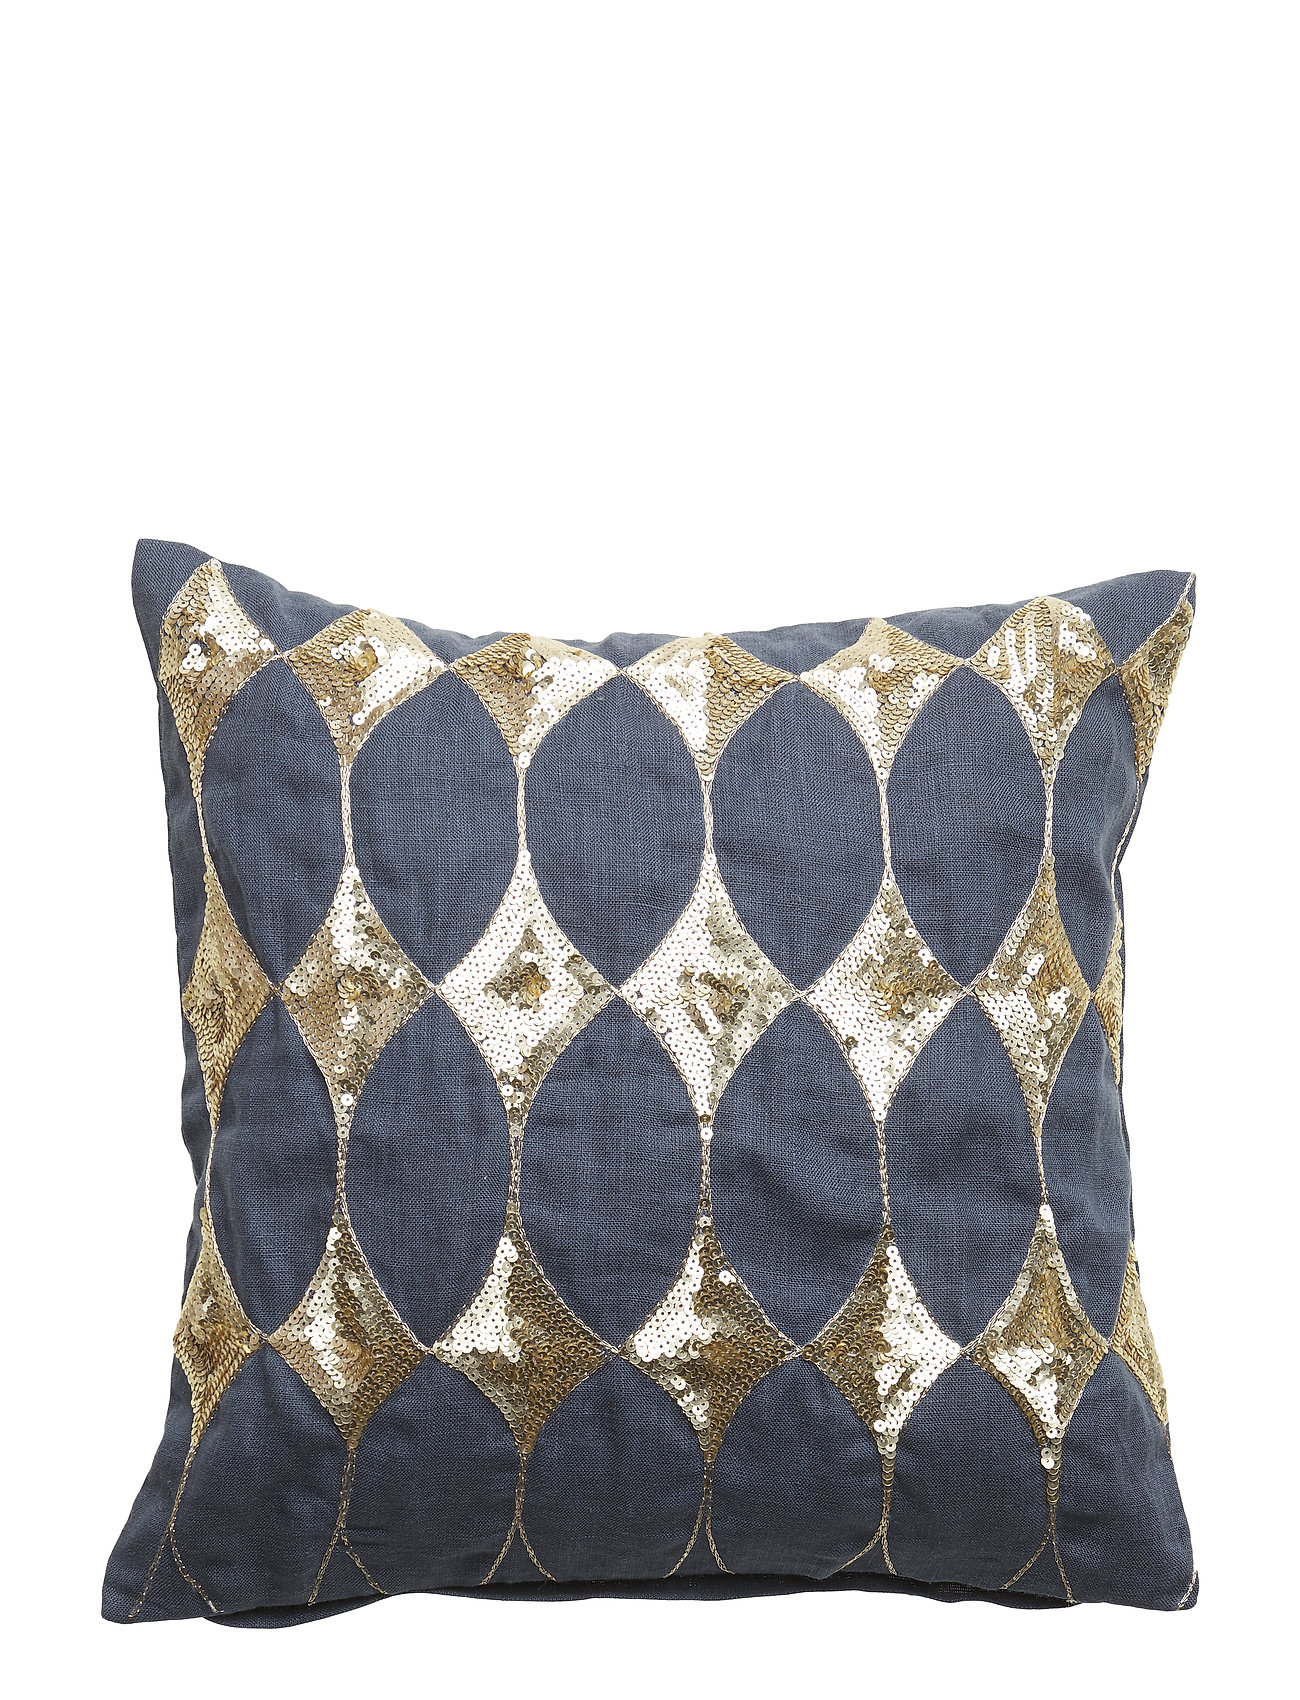 DAY Home Day Harlekin Cushion Cover - NIGHT SKY